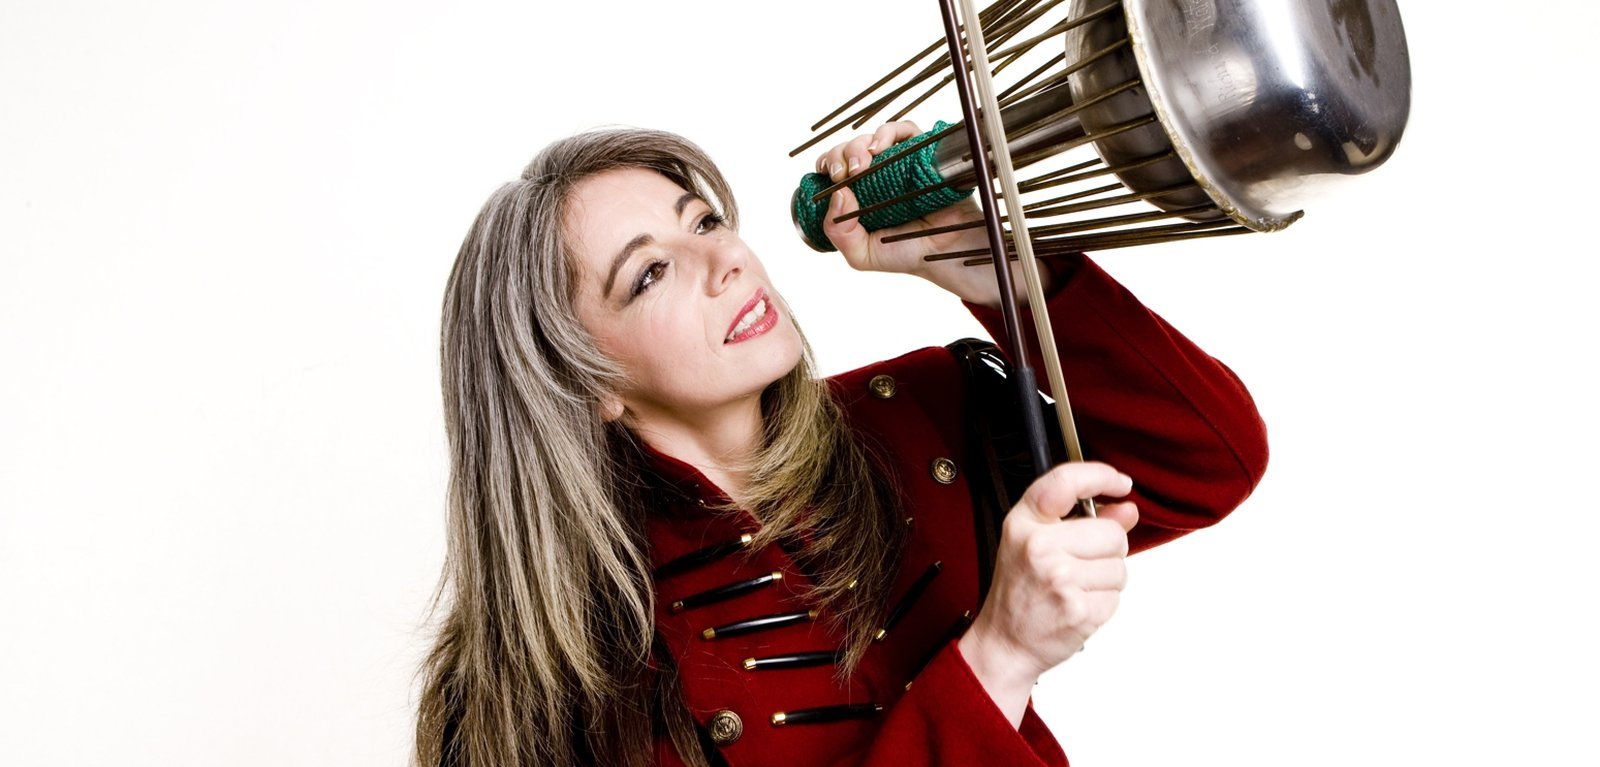 evelyn_glennie_c_jim_callaghan.jpg__1600x768_q85_crop-smart_cropper-media_background-_subsampling-2.jpg